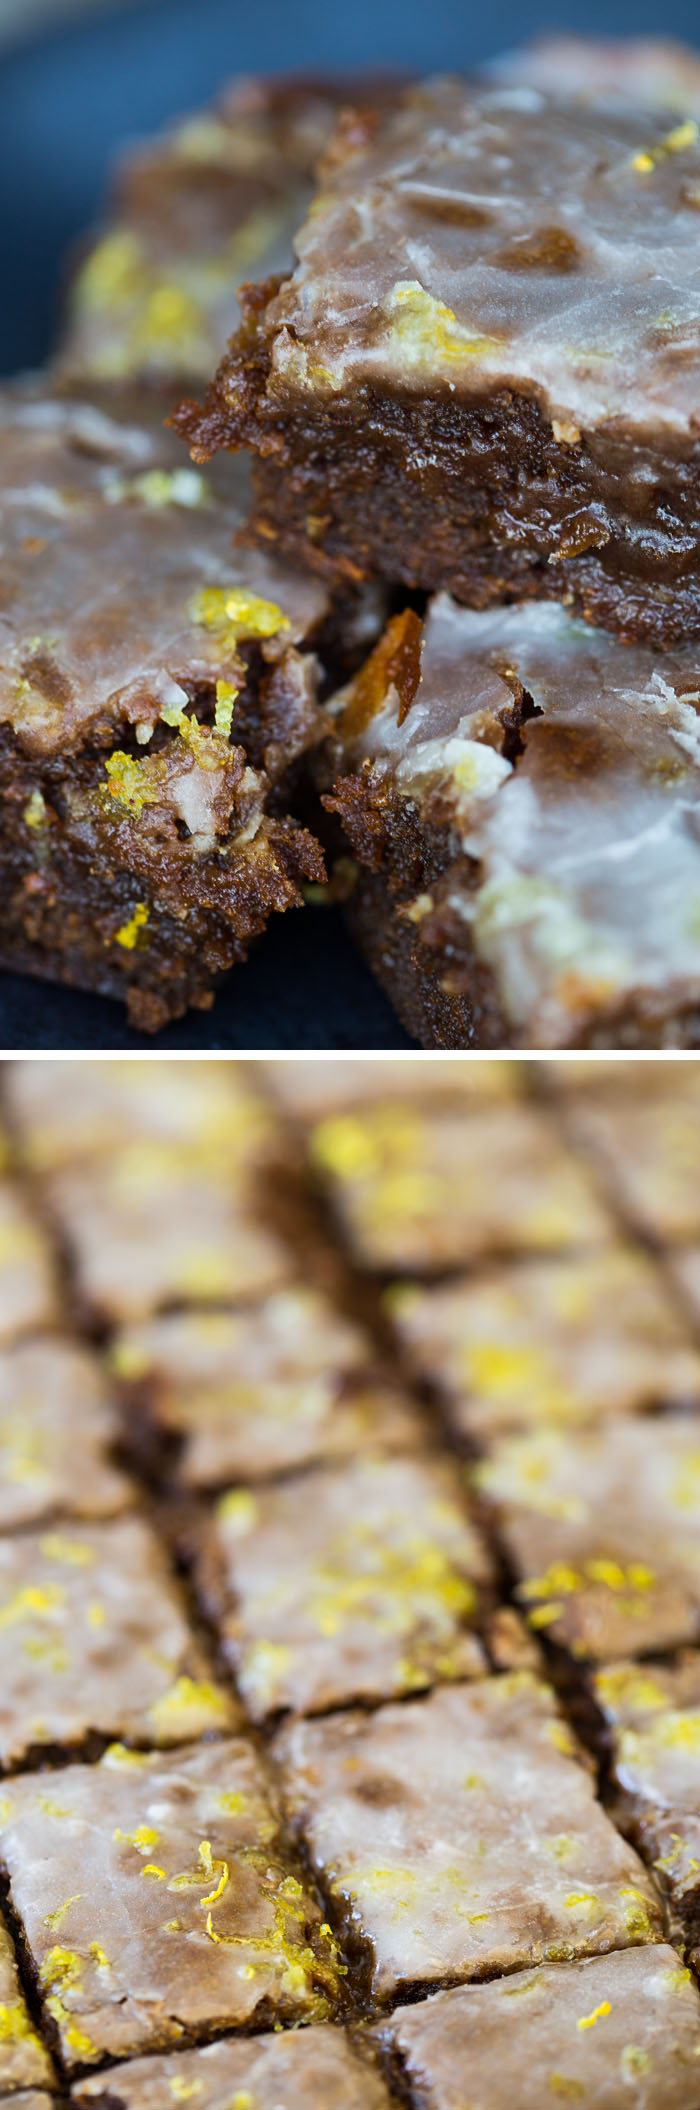 Warm Lemon-Glazed Gingerbread Bars